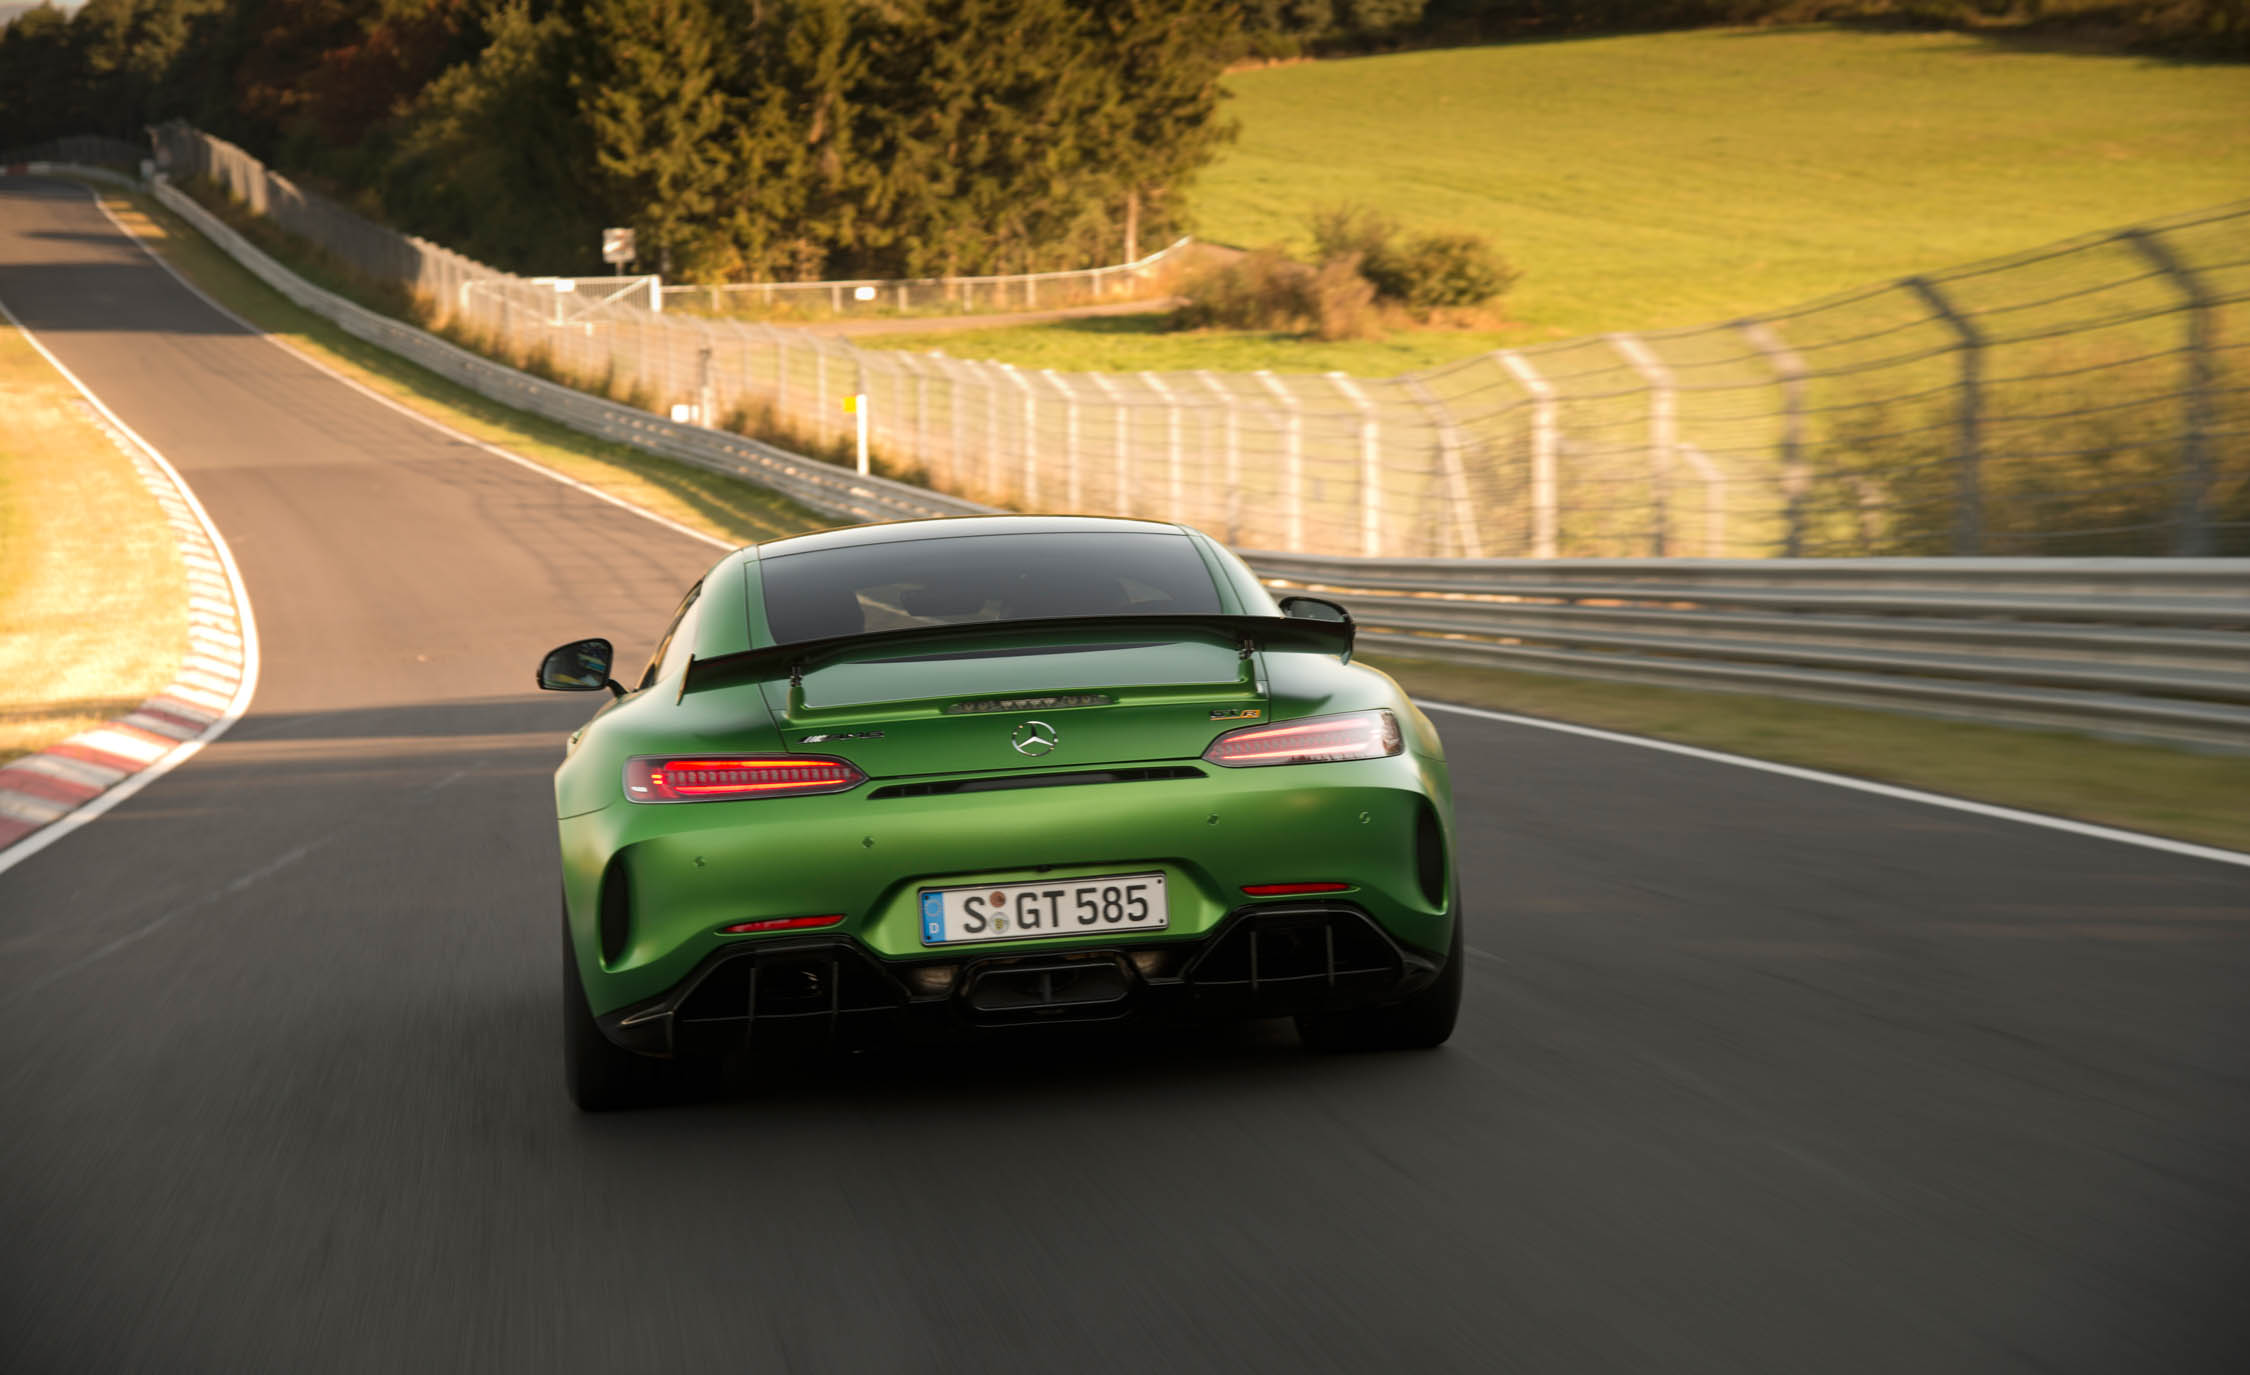 2017 Mercedes Amg Gt R Rear View (Photo 20 of 22)